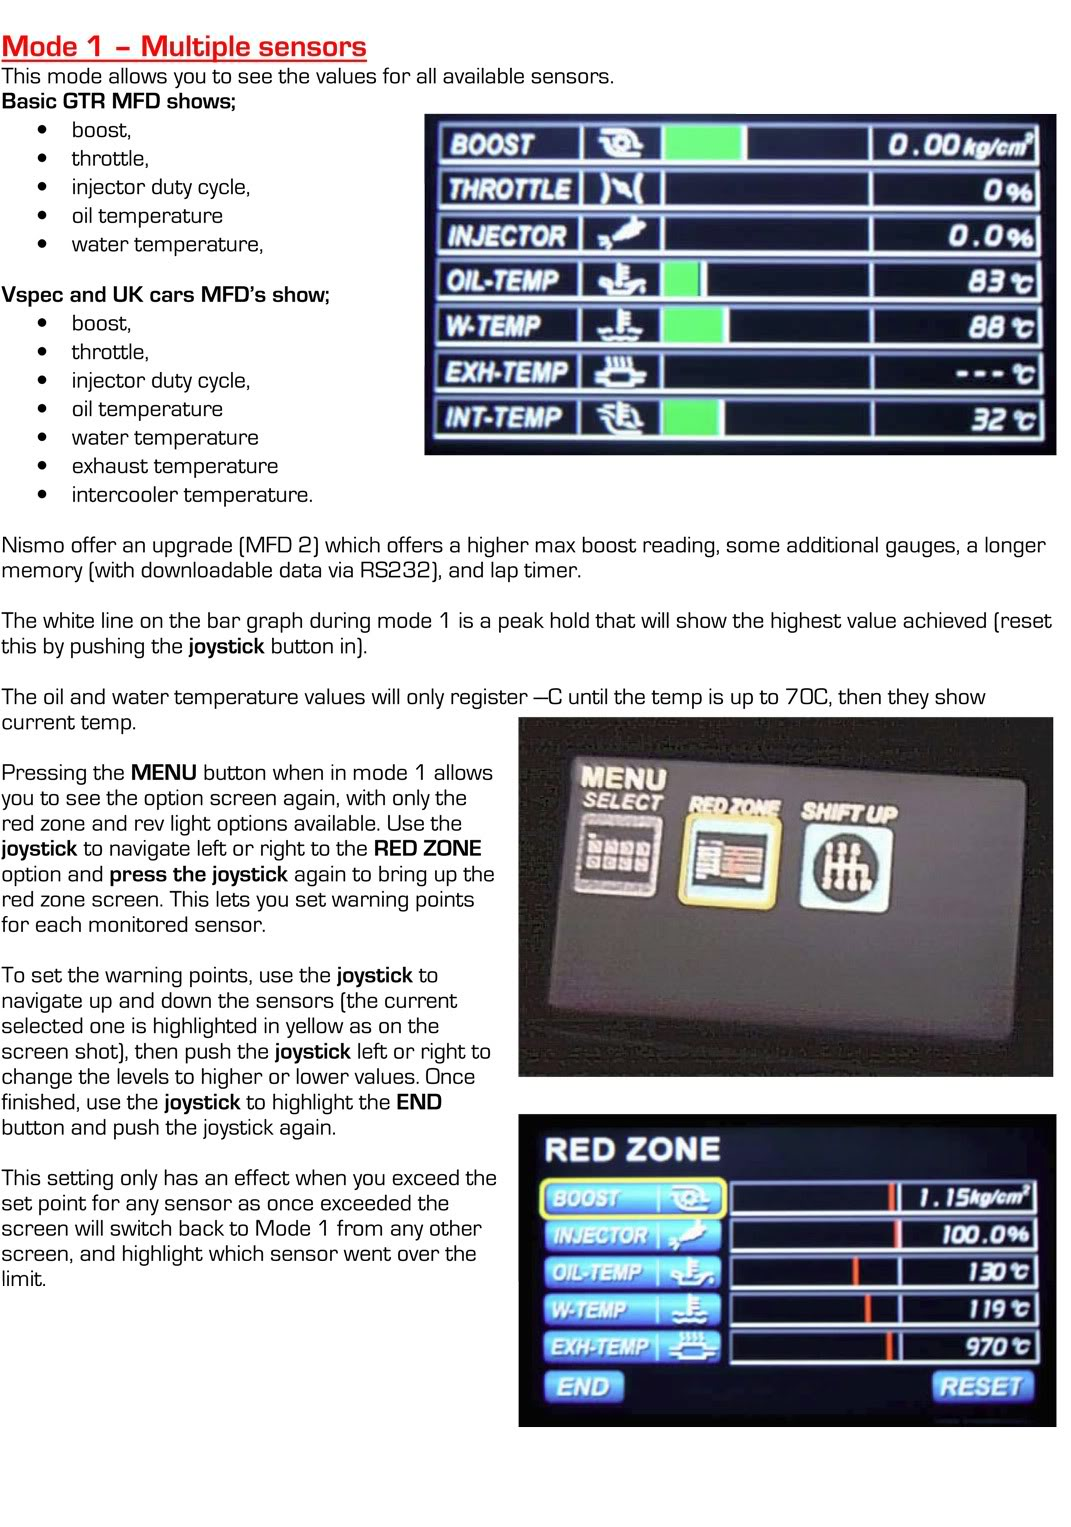 R34 Ecu Wiring Diagram Worksheet And R33 Auto Nissan Skyline Mfd Display Swap Into R32 Rh Skylife4ever Com Motronic